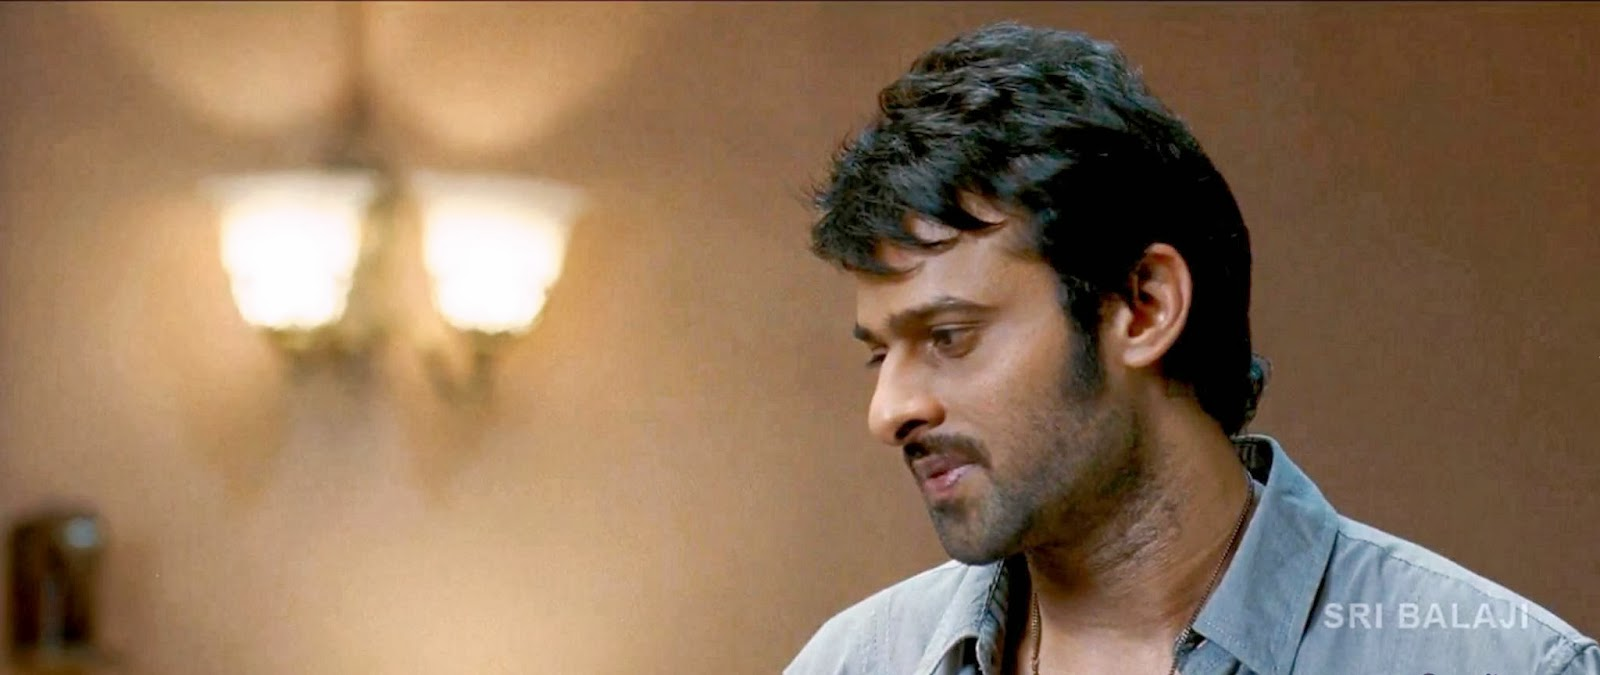 Prabhas Fans Forever: Old Man Convincing Scene From Mirchi